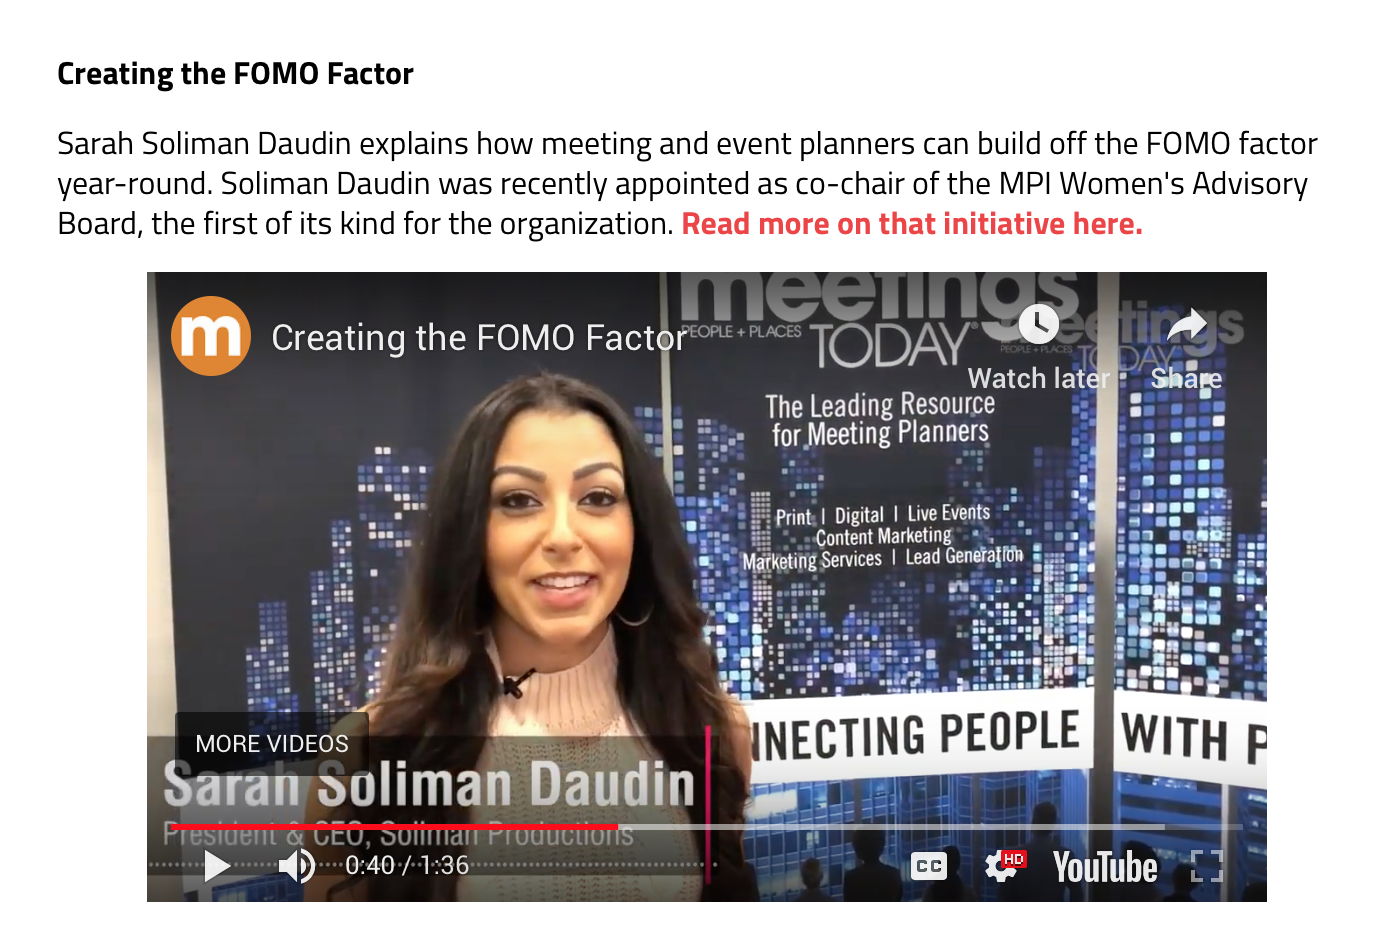 VIDEO: Creating the FOMO Factor | Meetings Today